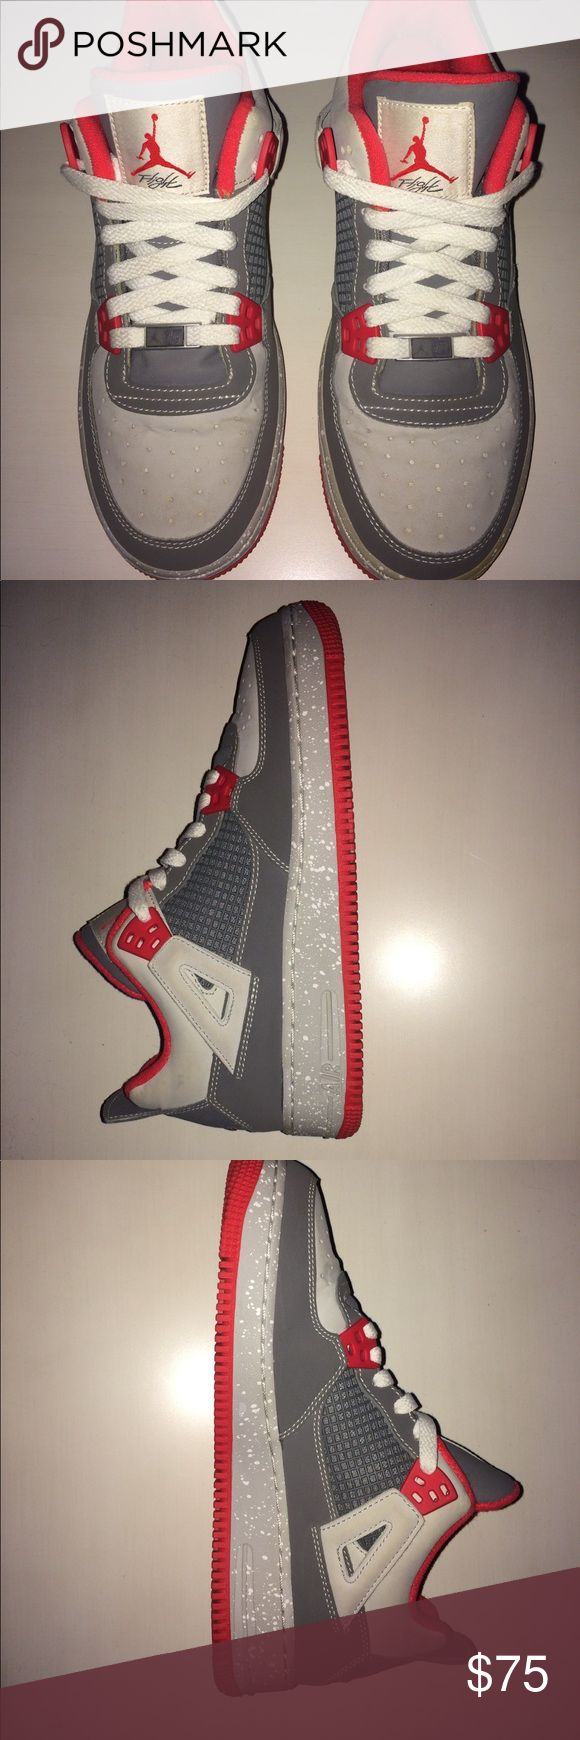 Nike Jordan's flight shoes The are a red and silver color, the size is 6.5 men's youth but will fit a women's size 8. The shoe can also fit a slightly wider foot as well. Only worn a few times (3). There is a small defect (came out of factory this way) the half of the bottom brim on the shoe (shown in last picture) faded into gold instead of silver. It is just on the one shoe. Nike Shoes Sneakers